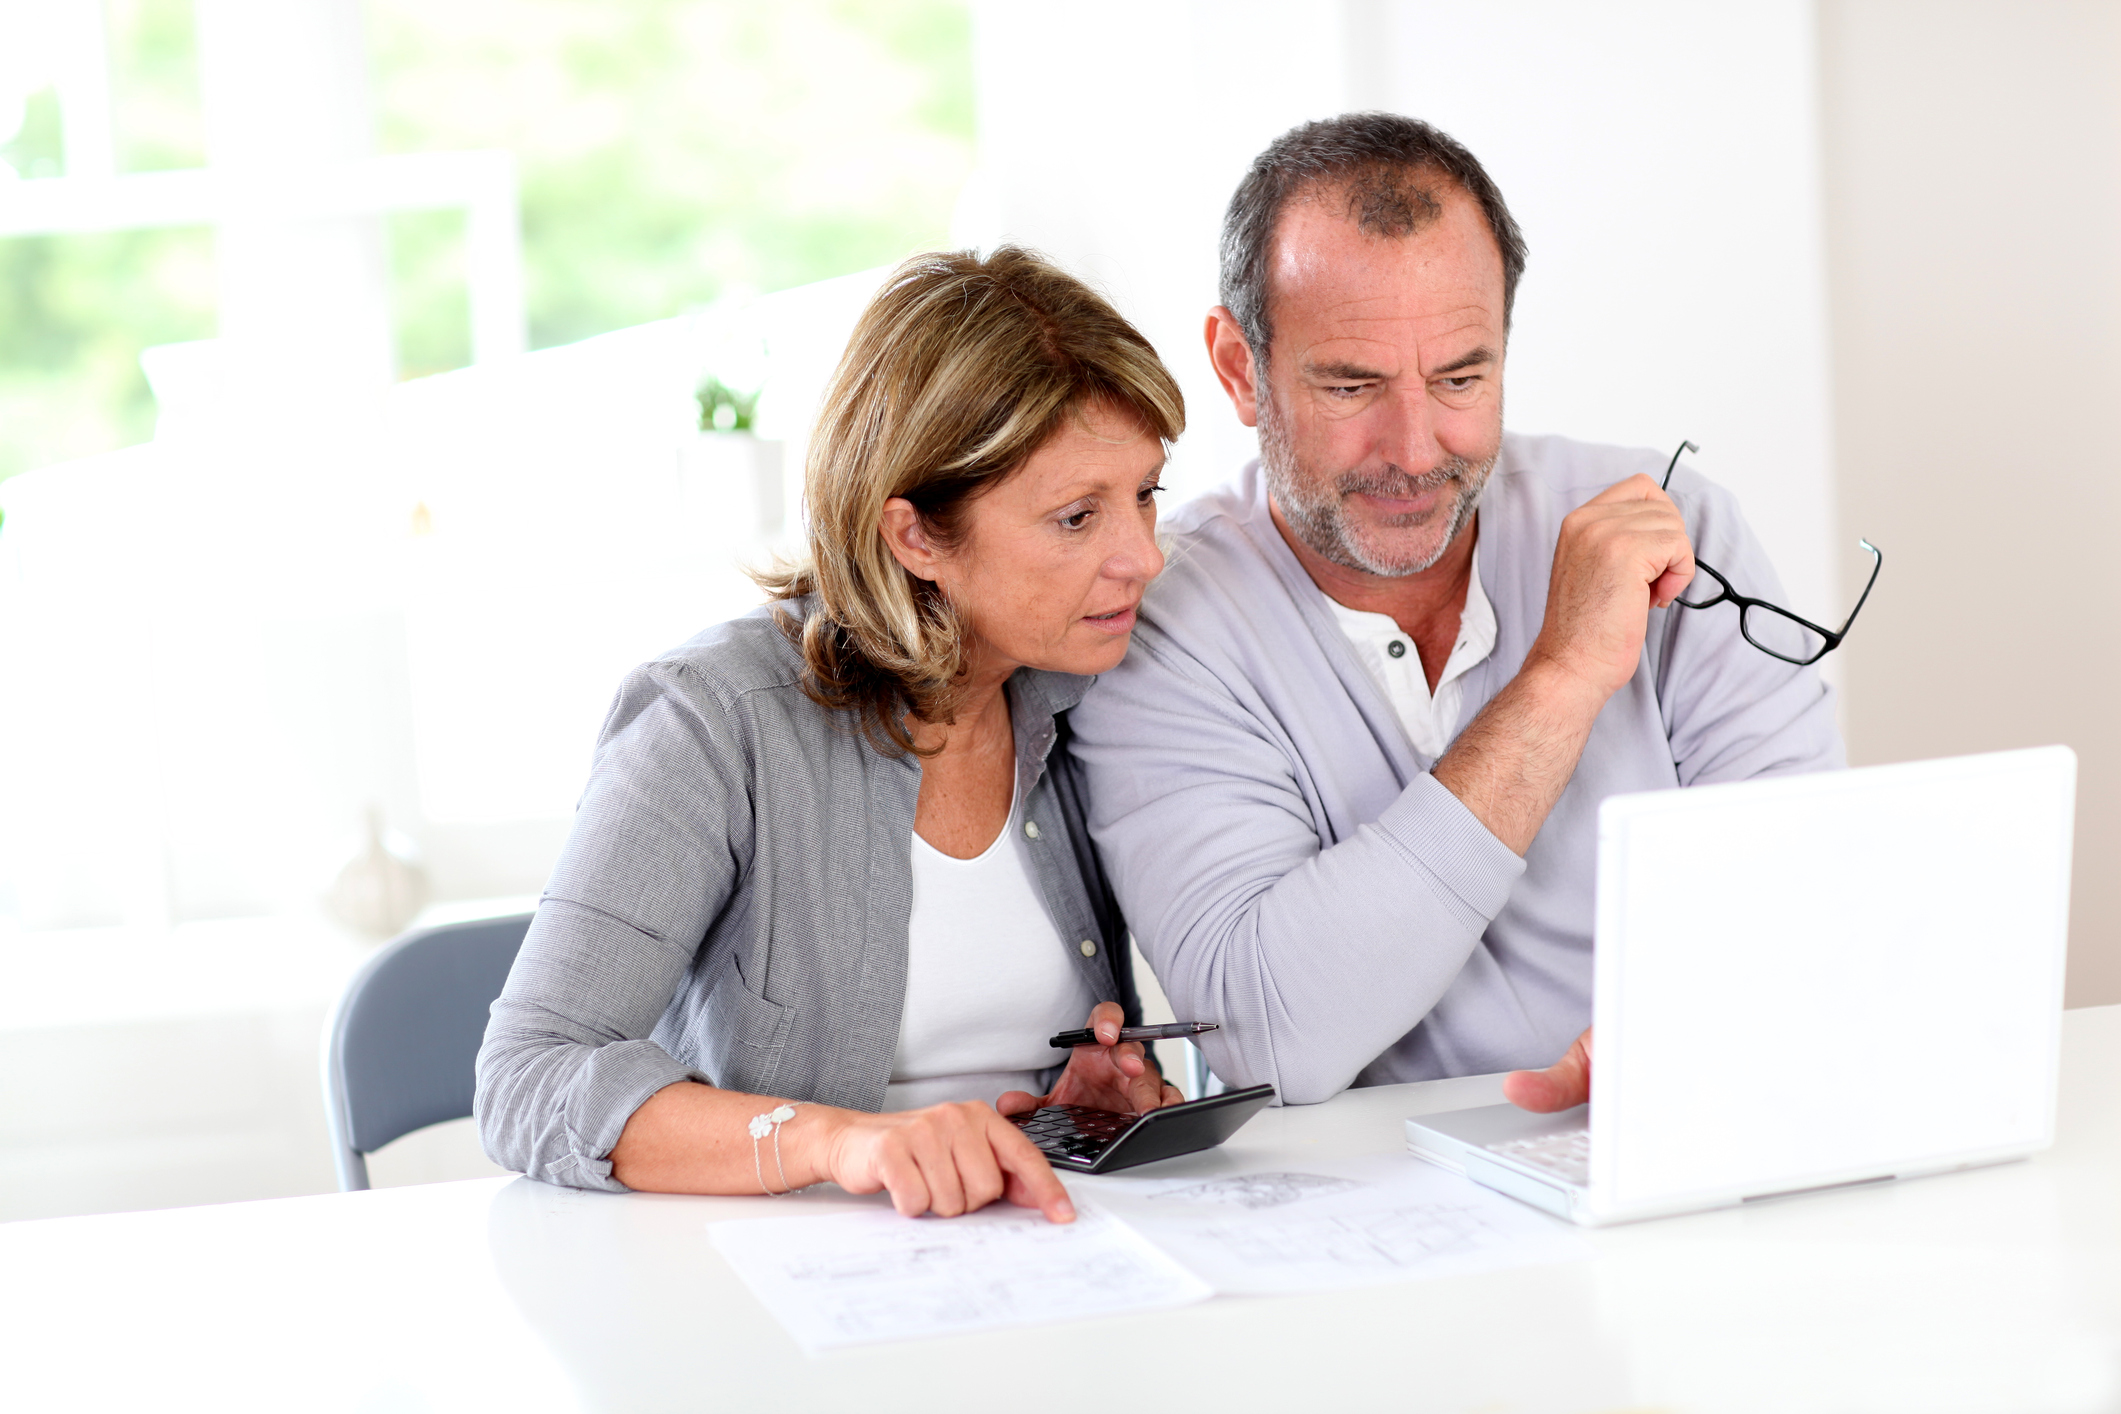 Why Different? - The one thing often missing with employer sponsored retirement plans; competent financial professionals to help employees make sound investment and financial decisions. Our team of CFPs and CPAs fill that gap.